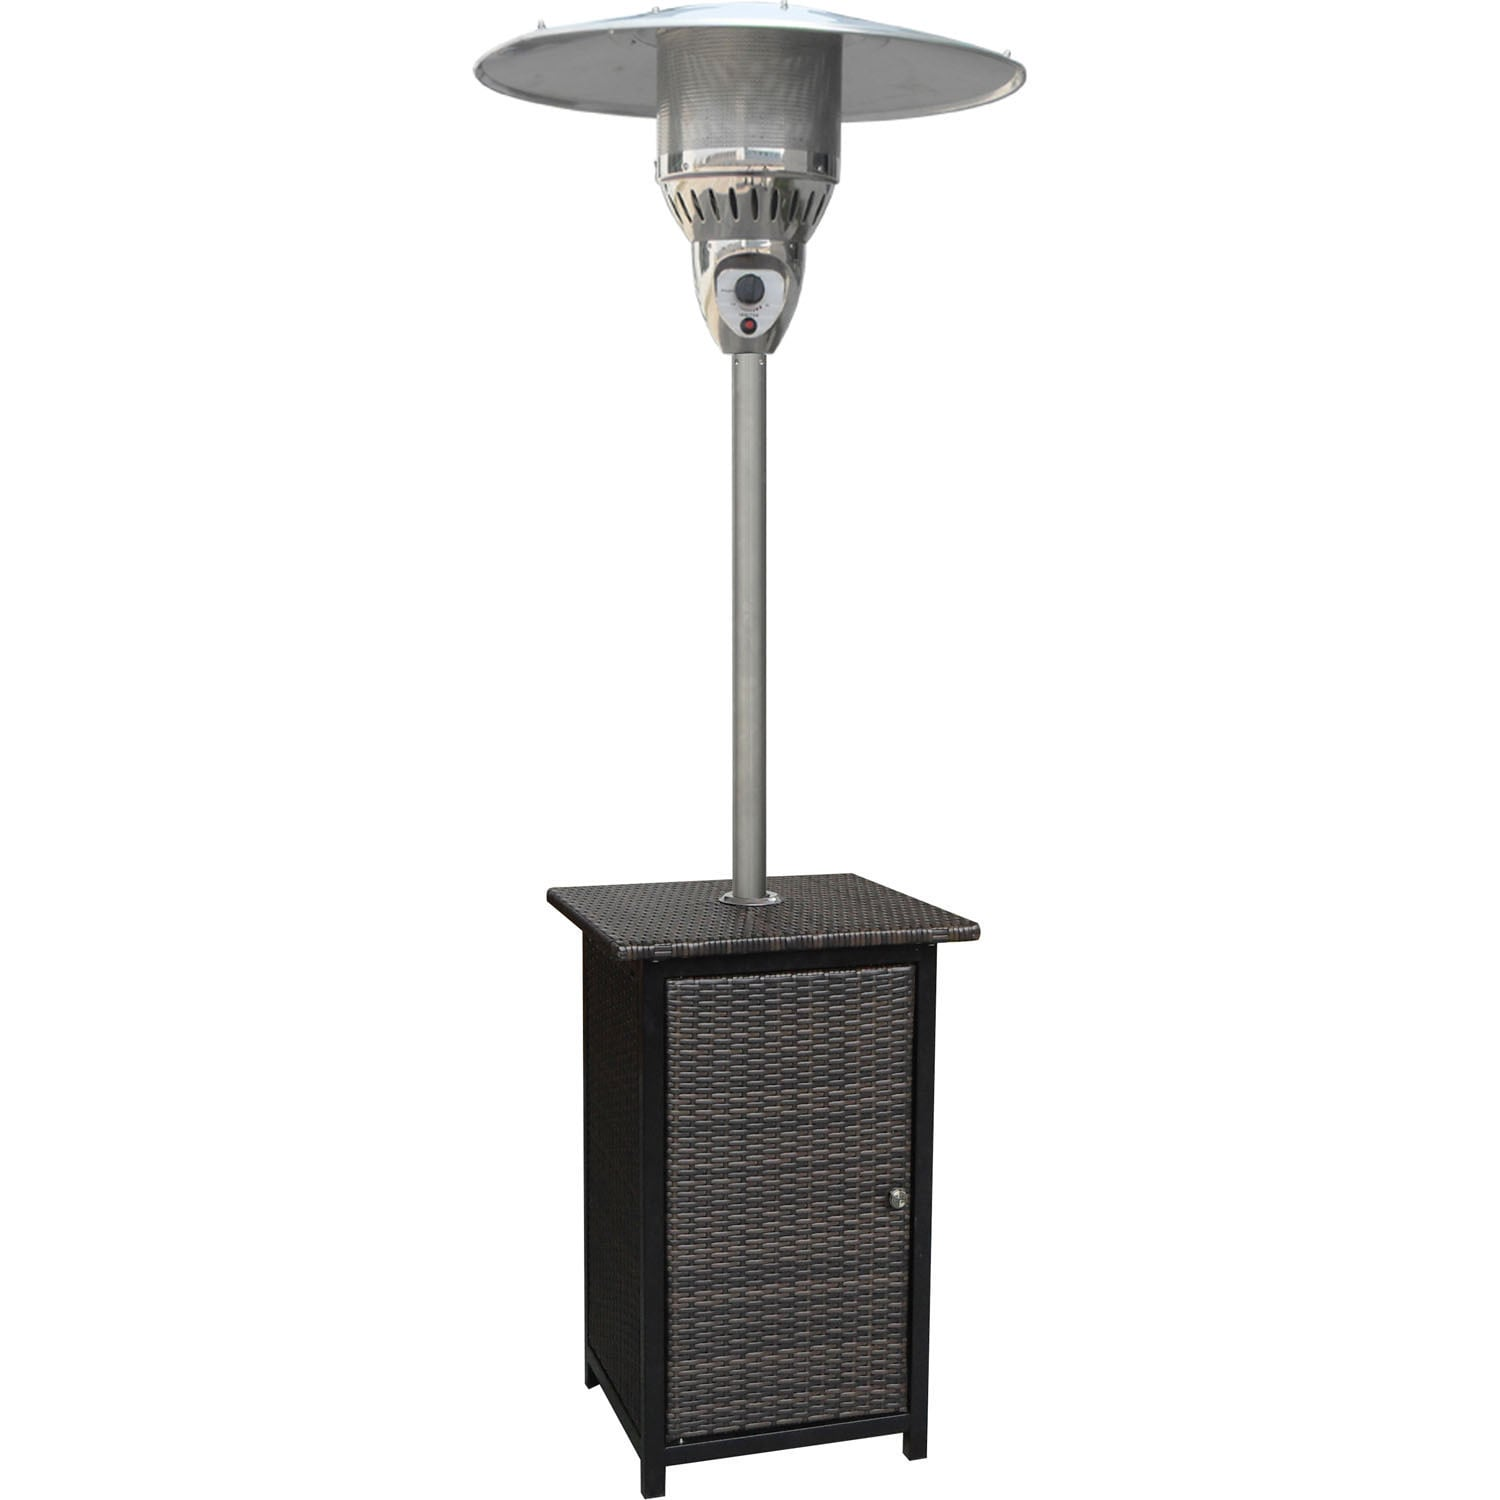 Hanover Brown Stainless SteelWicker Foot BTU Square - 7 foot stainless steel table